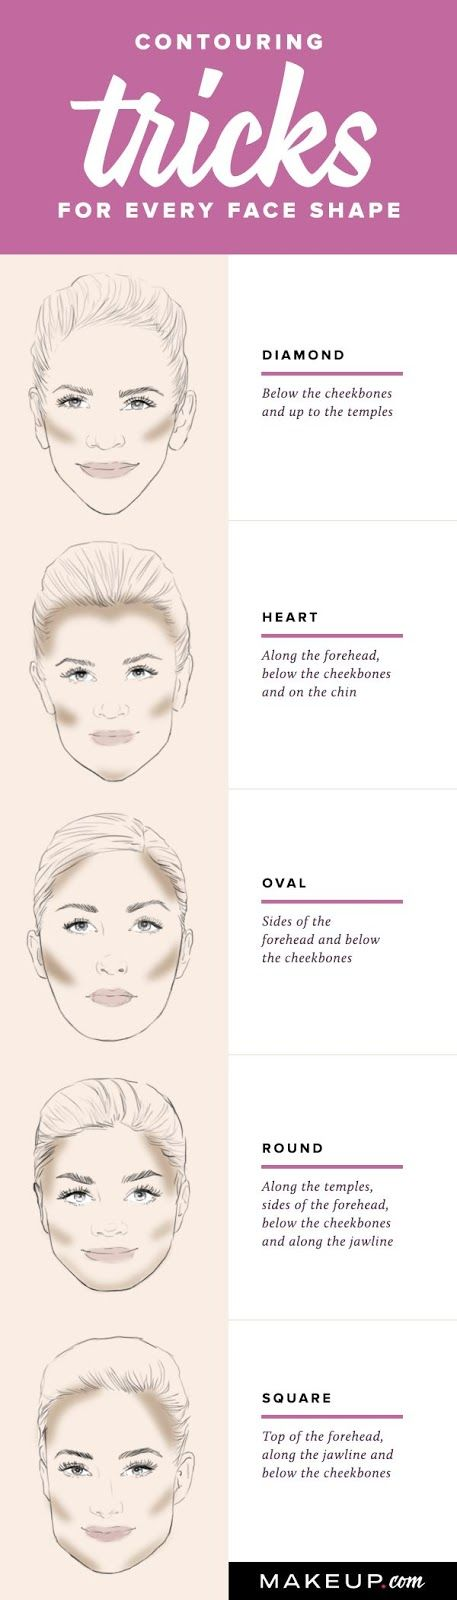 Best Contouring Tricks For Everyday Face Shape